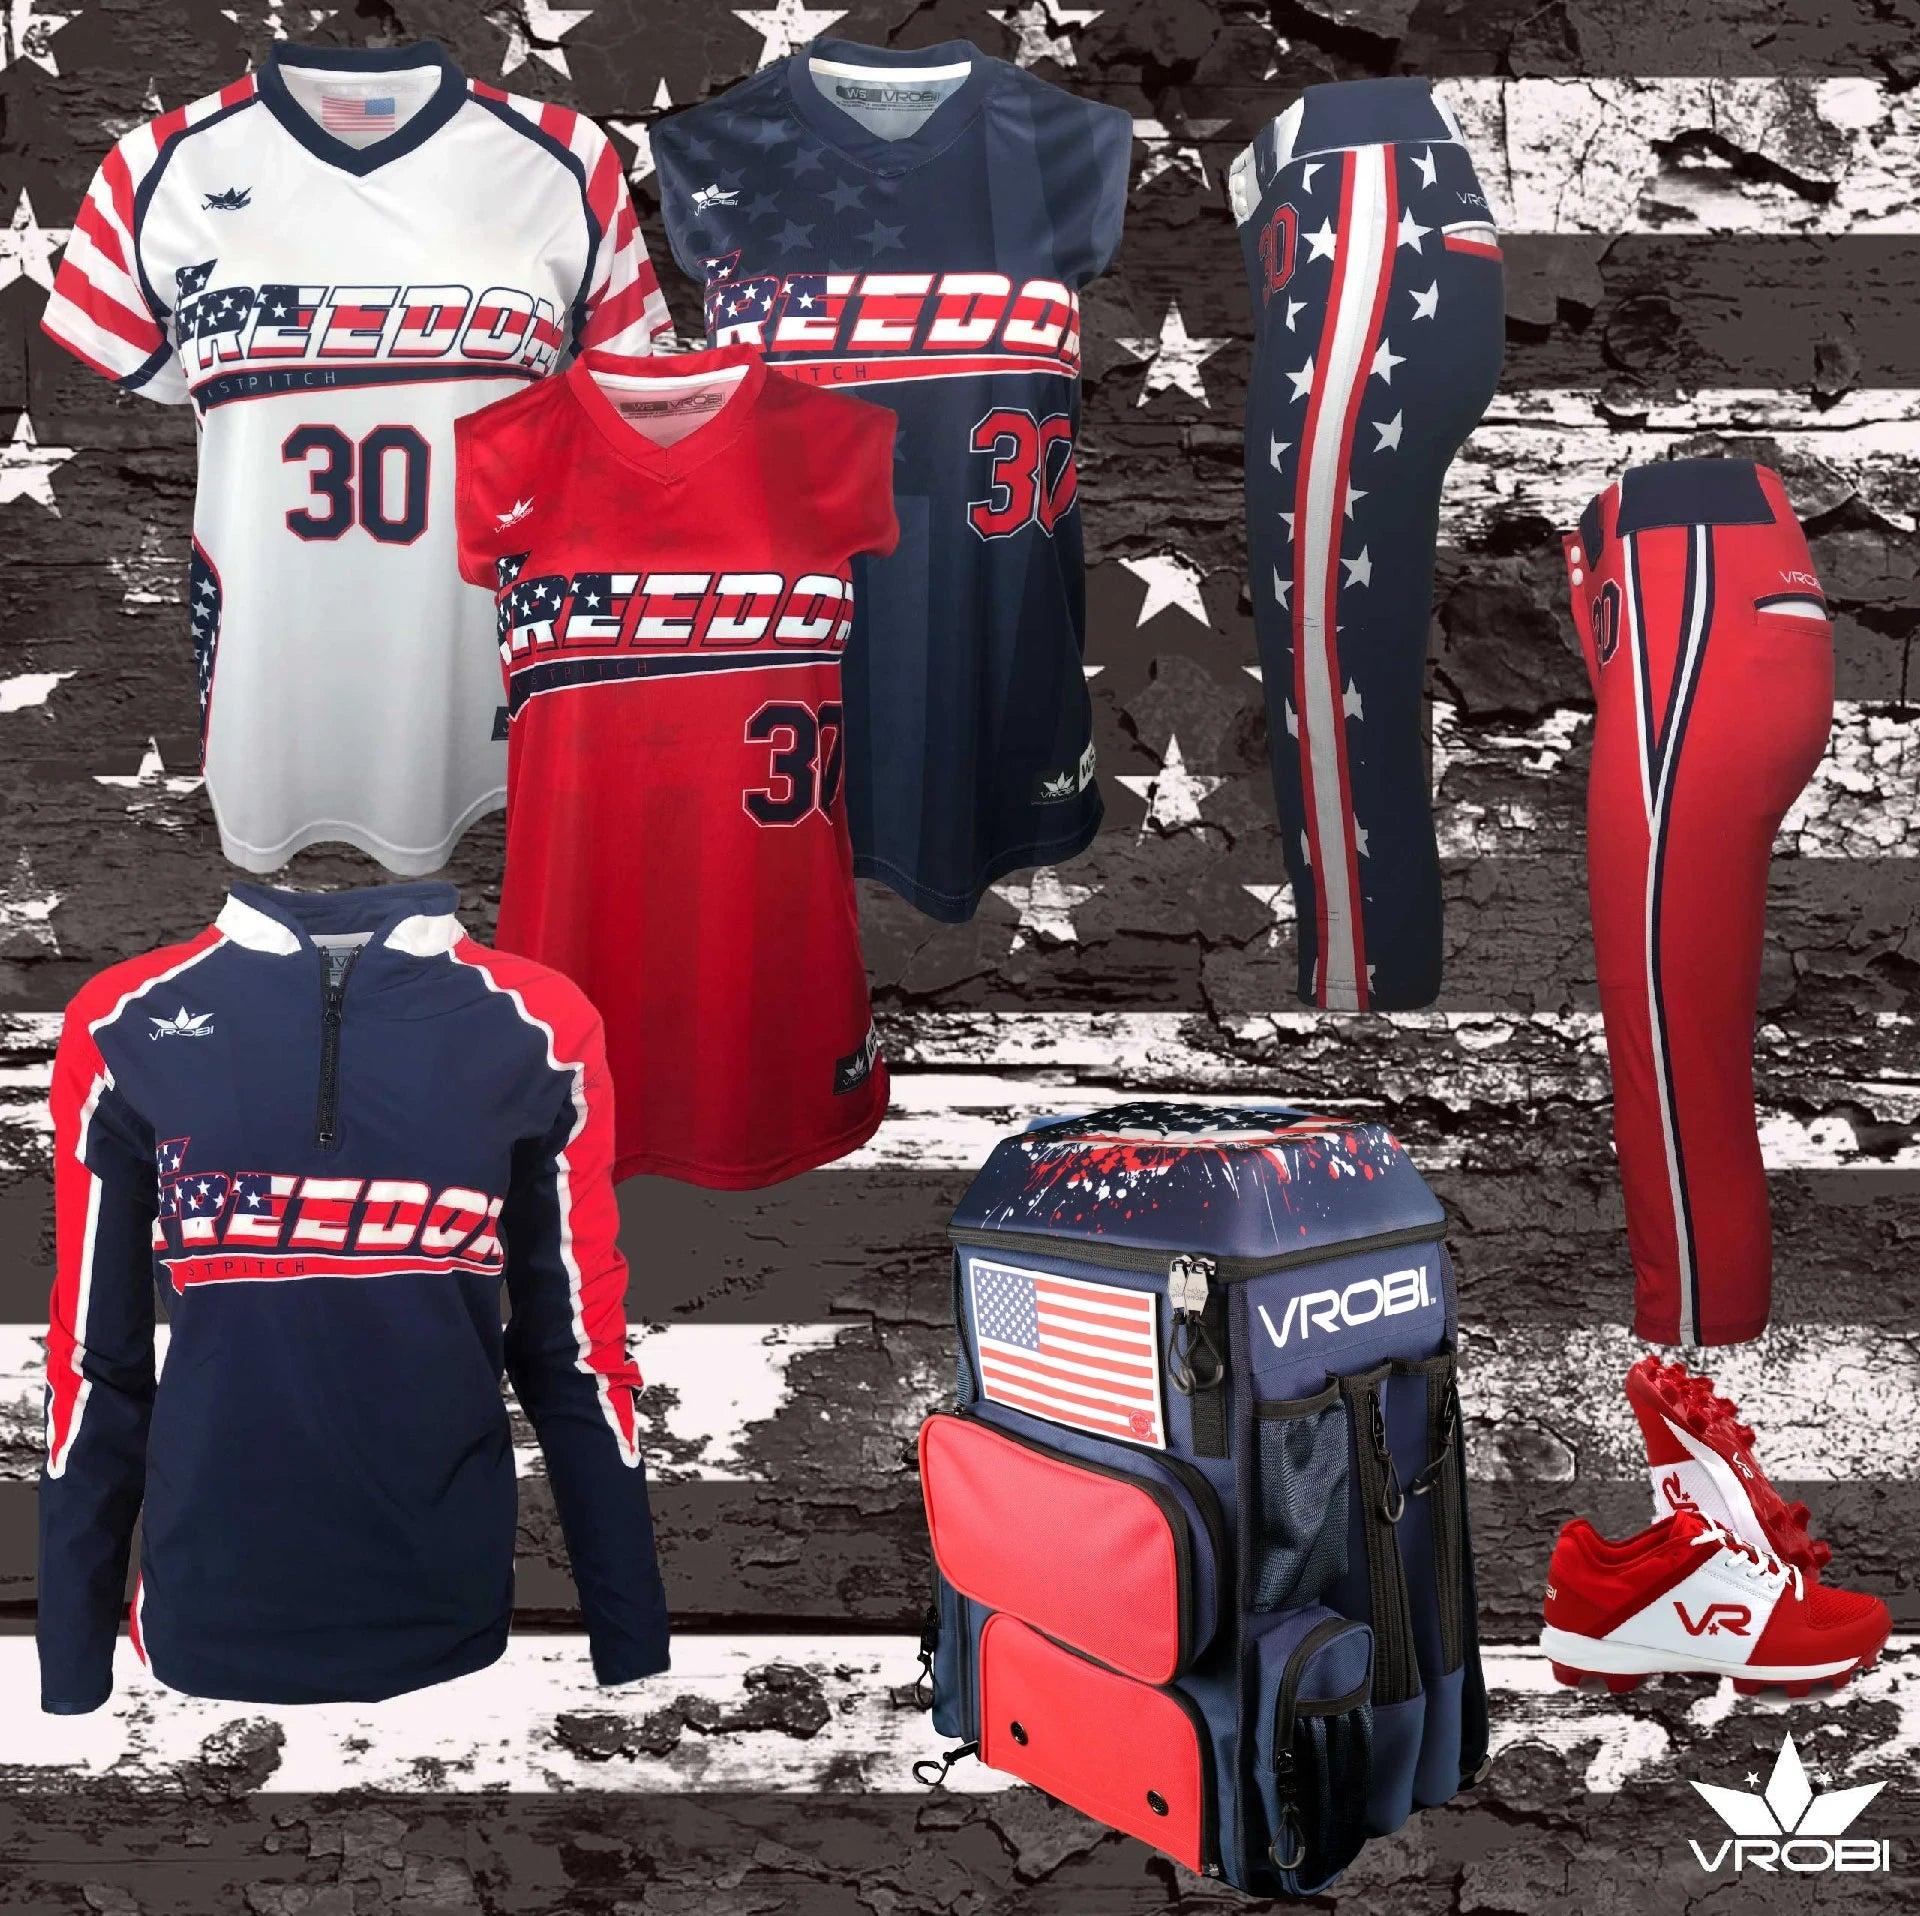 Platinum Plus Package for Fastpitch Softball showing custom uniforms and Bat Pack